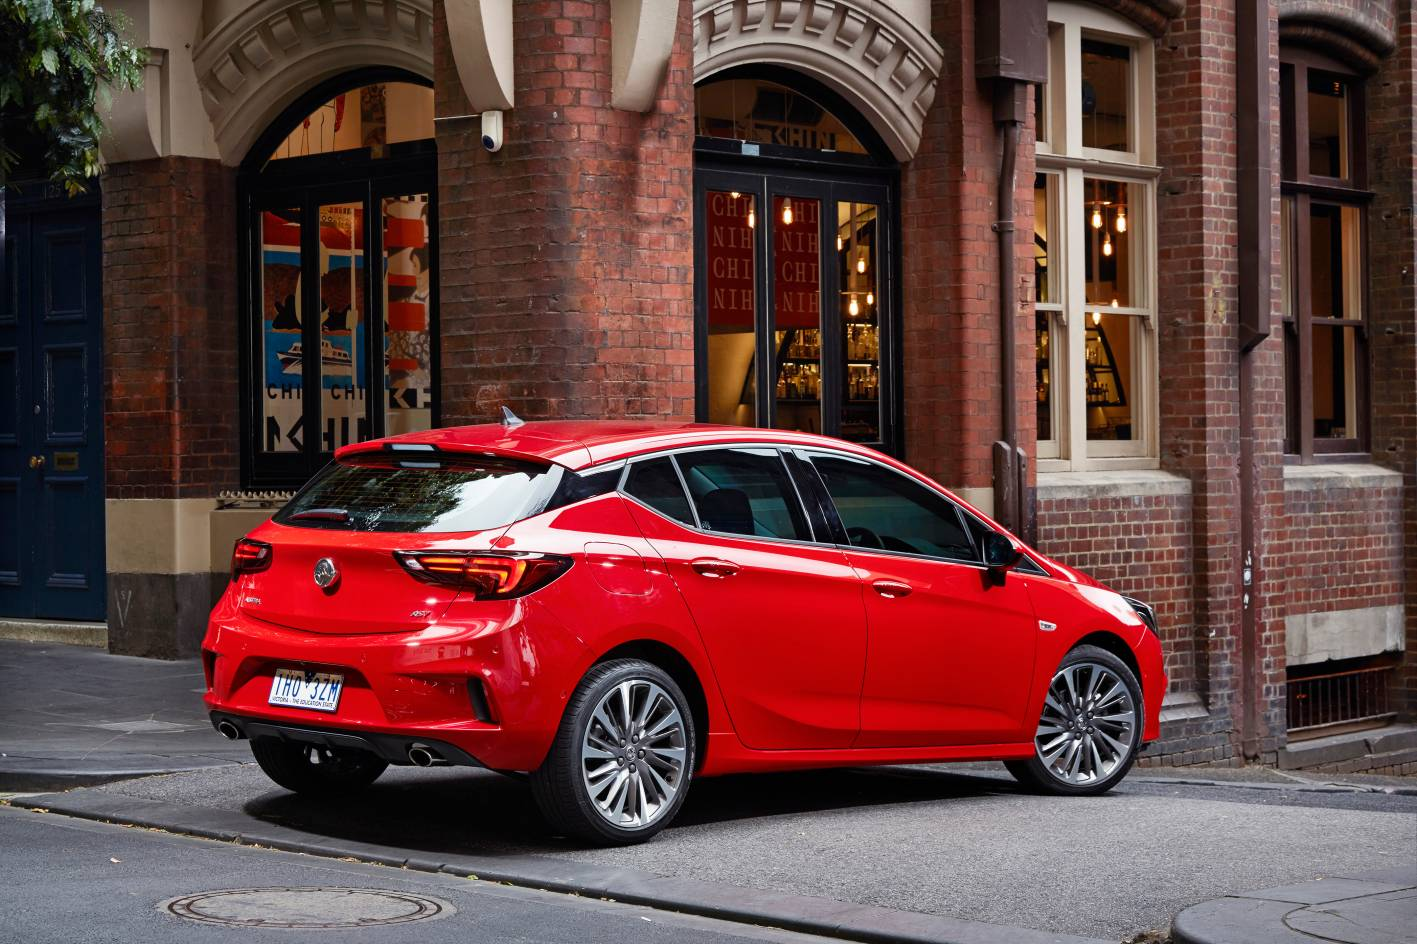 Holden Astra hatch is just not as space efficient as Mazda3 or Hyundai i30 - especially in the cargo bay